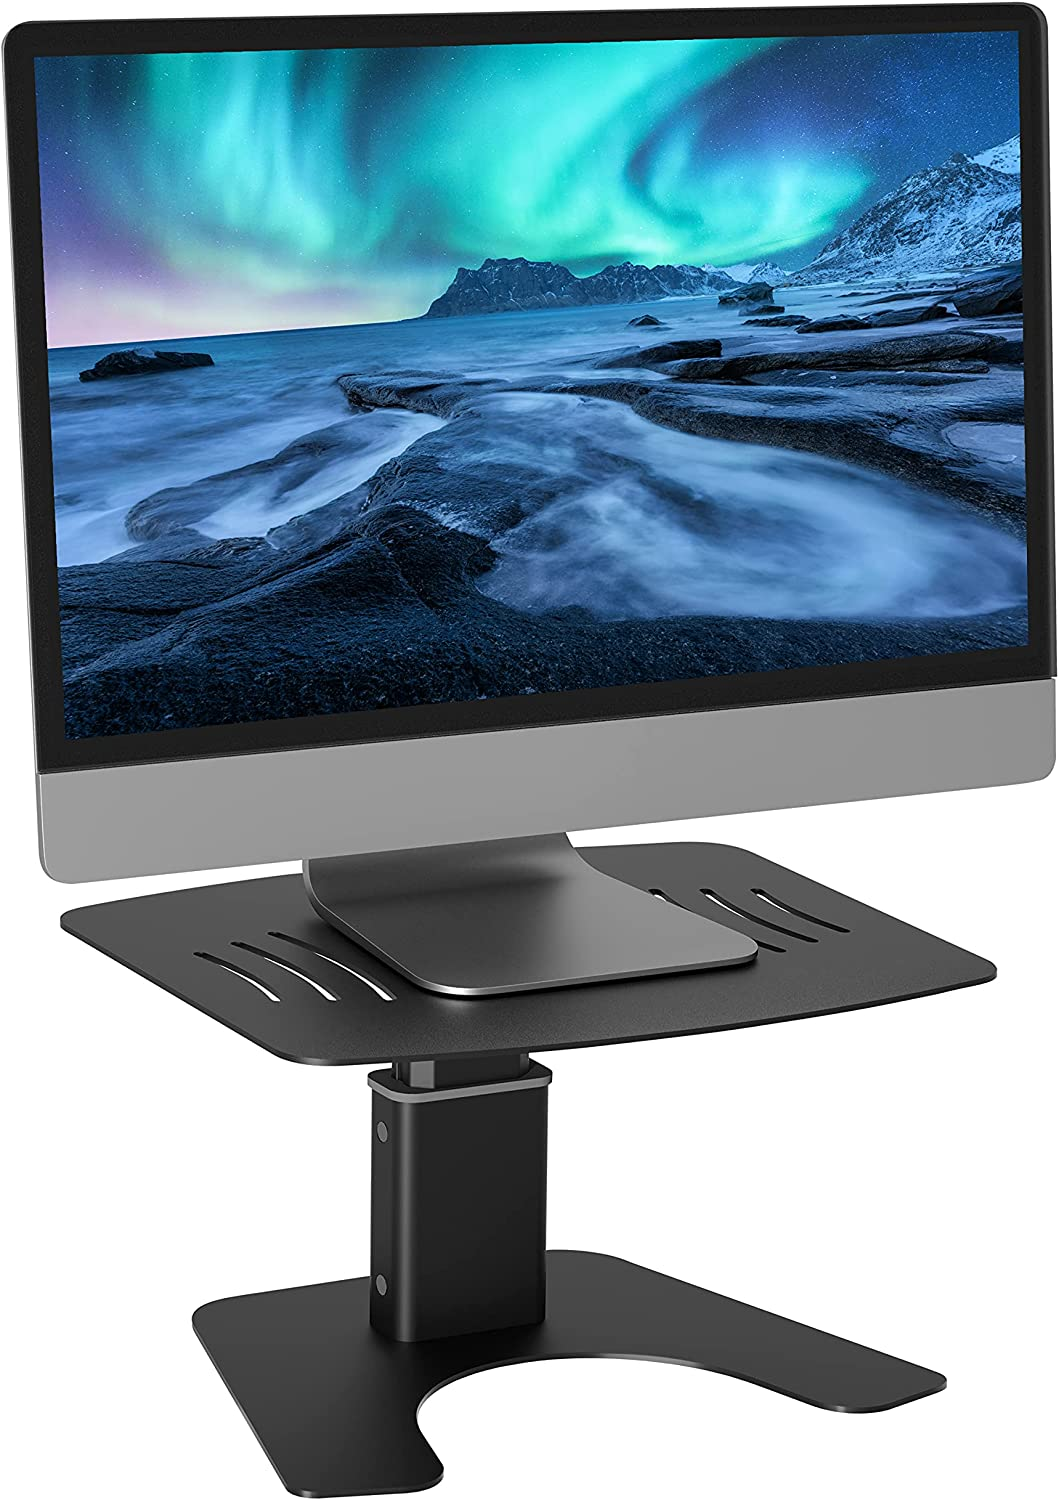 """Orionstar Monitor Stand Riser with Adjustable Height, Metal Computer Holder for Desk, Easy to Assemble, Office Desktop Storage Organizer, Compatible with TV, Laptop Up to 27""""PC Screen, Black"""